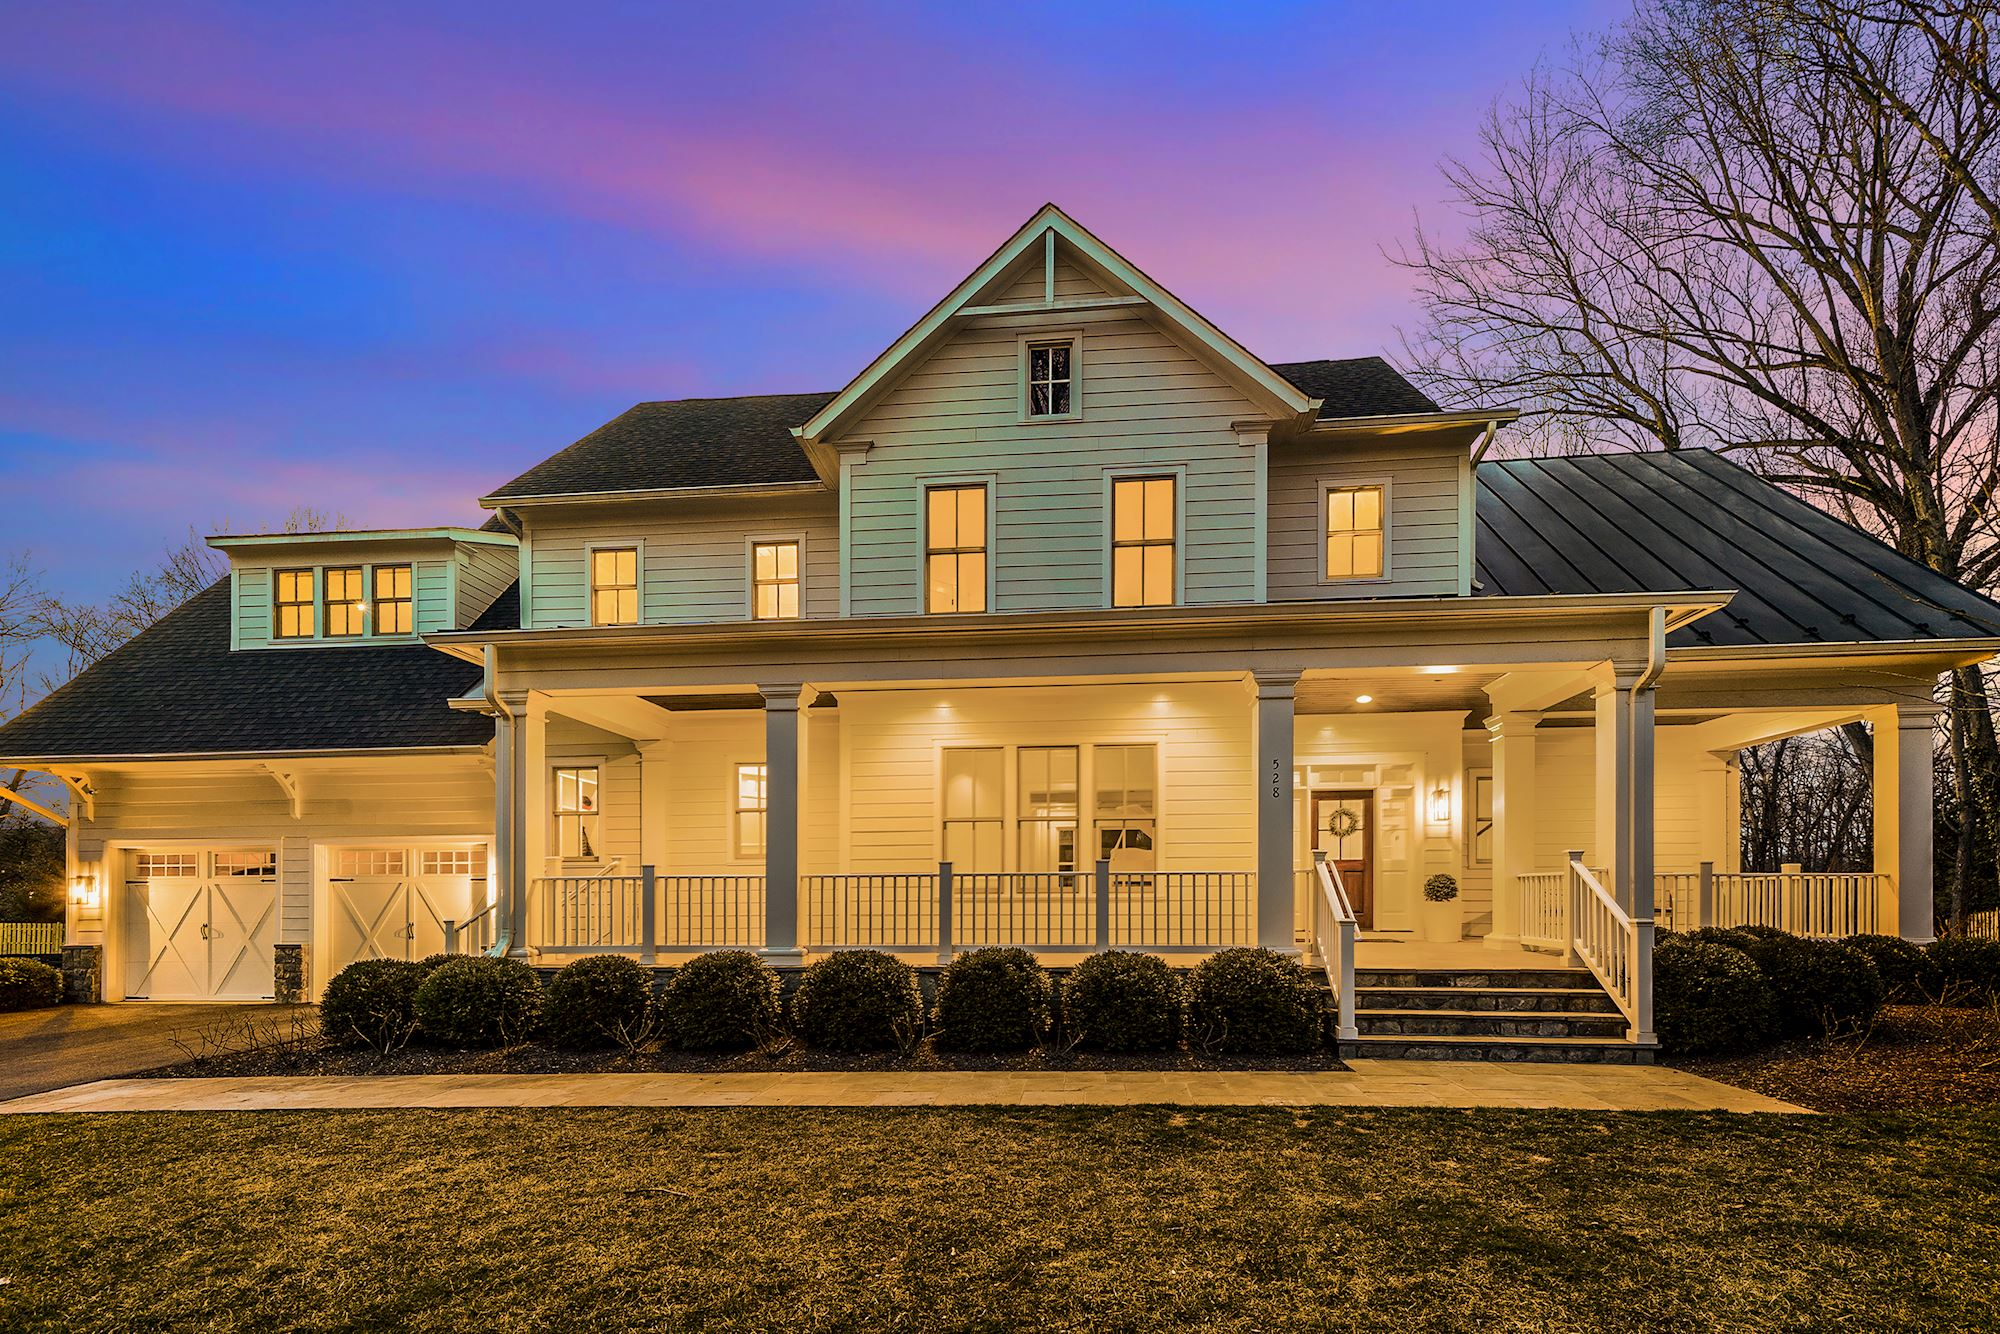 SOLD: 3rd Highest Resale Home Ever in Town of Vienna